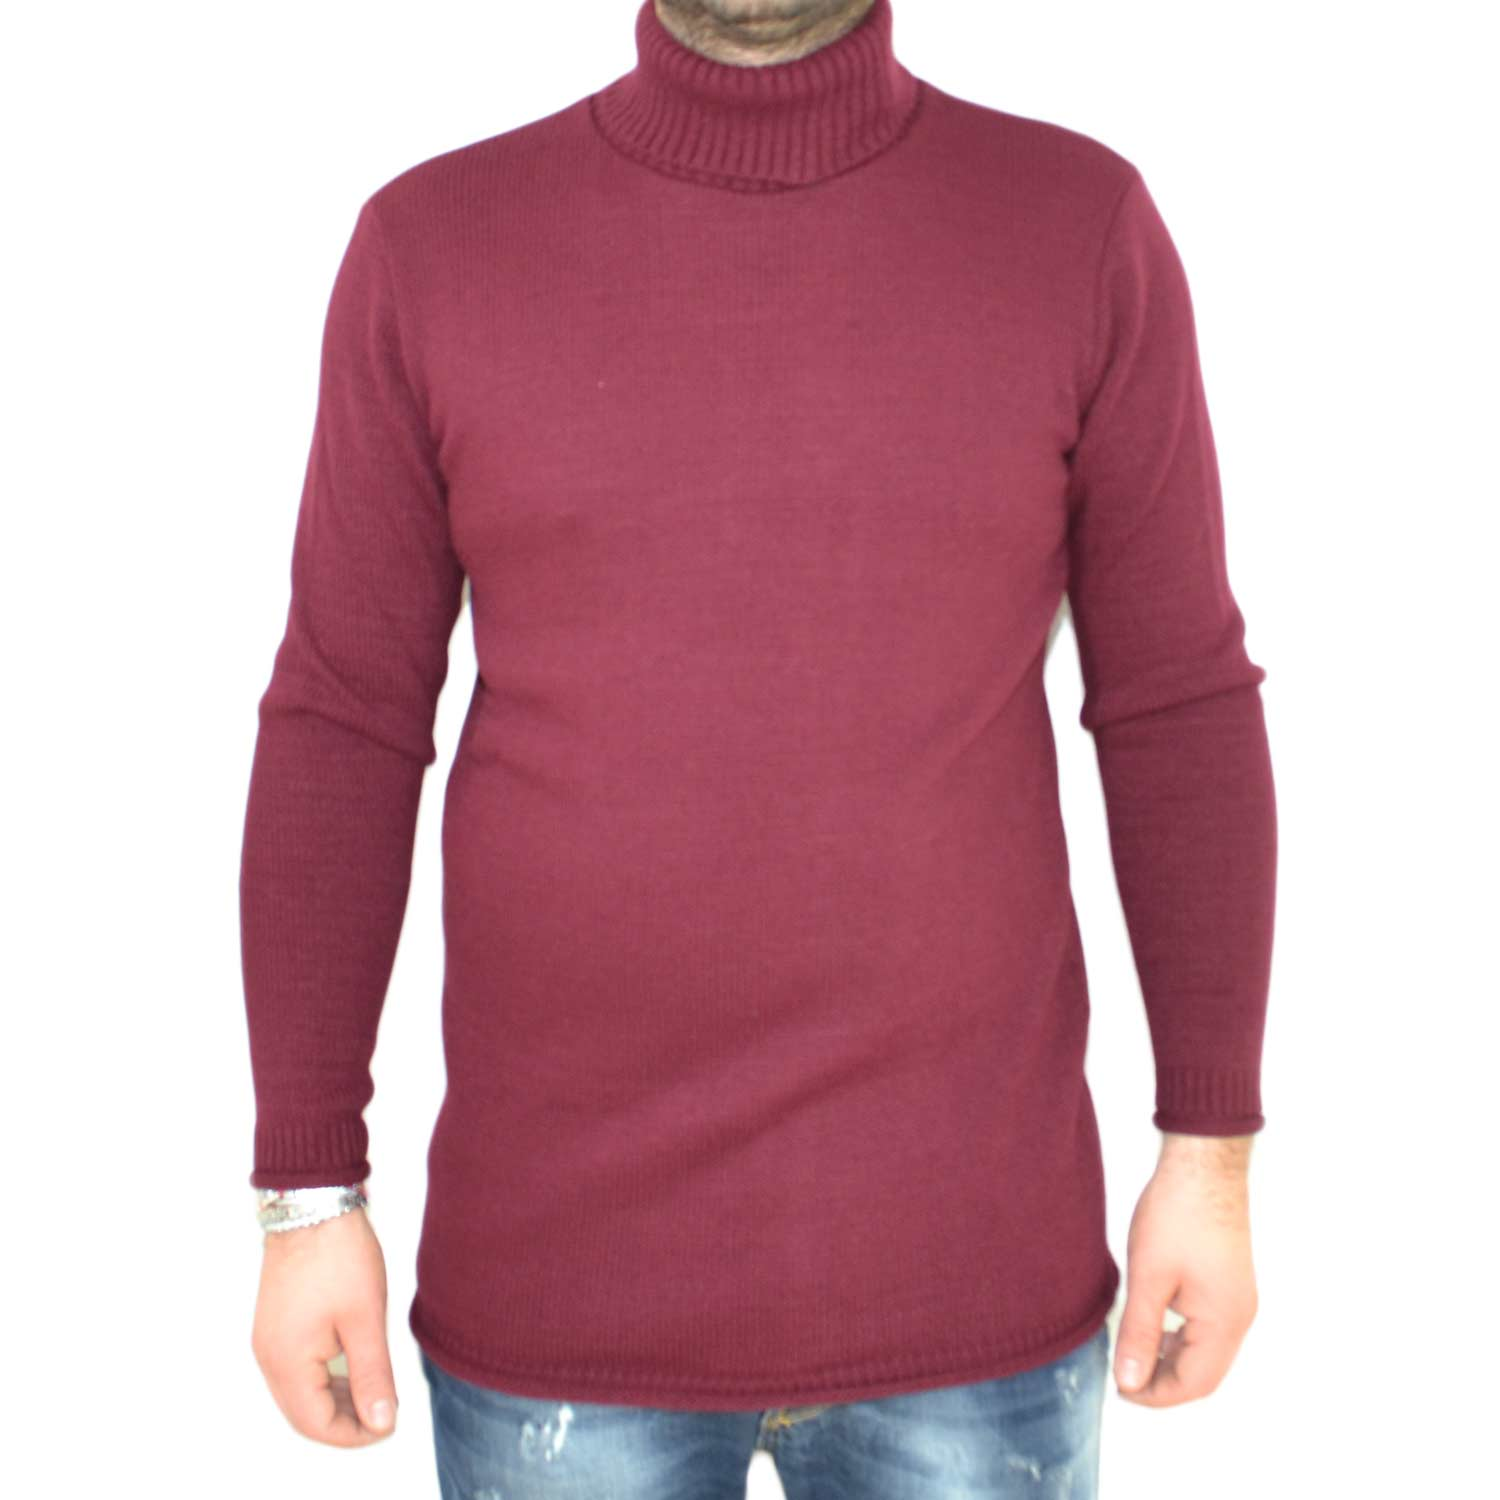 Maglione collo alto art..4432 bordeaux made in italy moda tendenza slim.